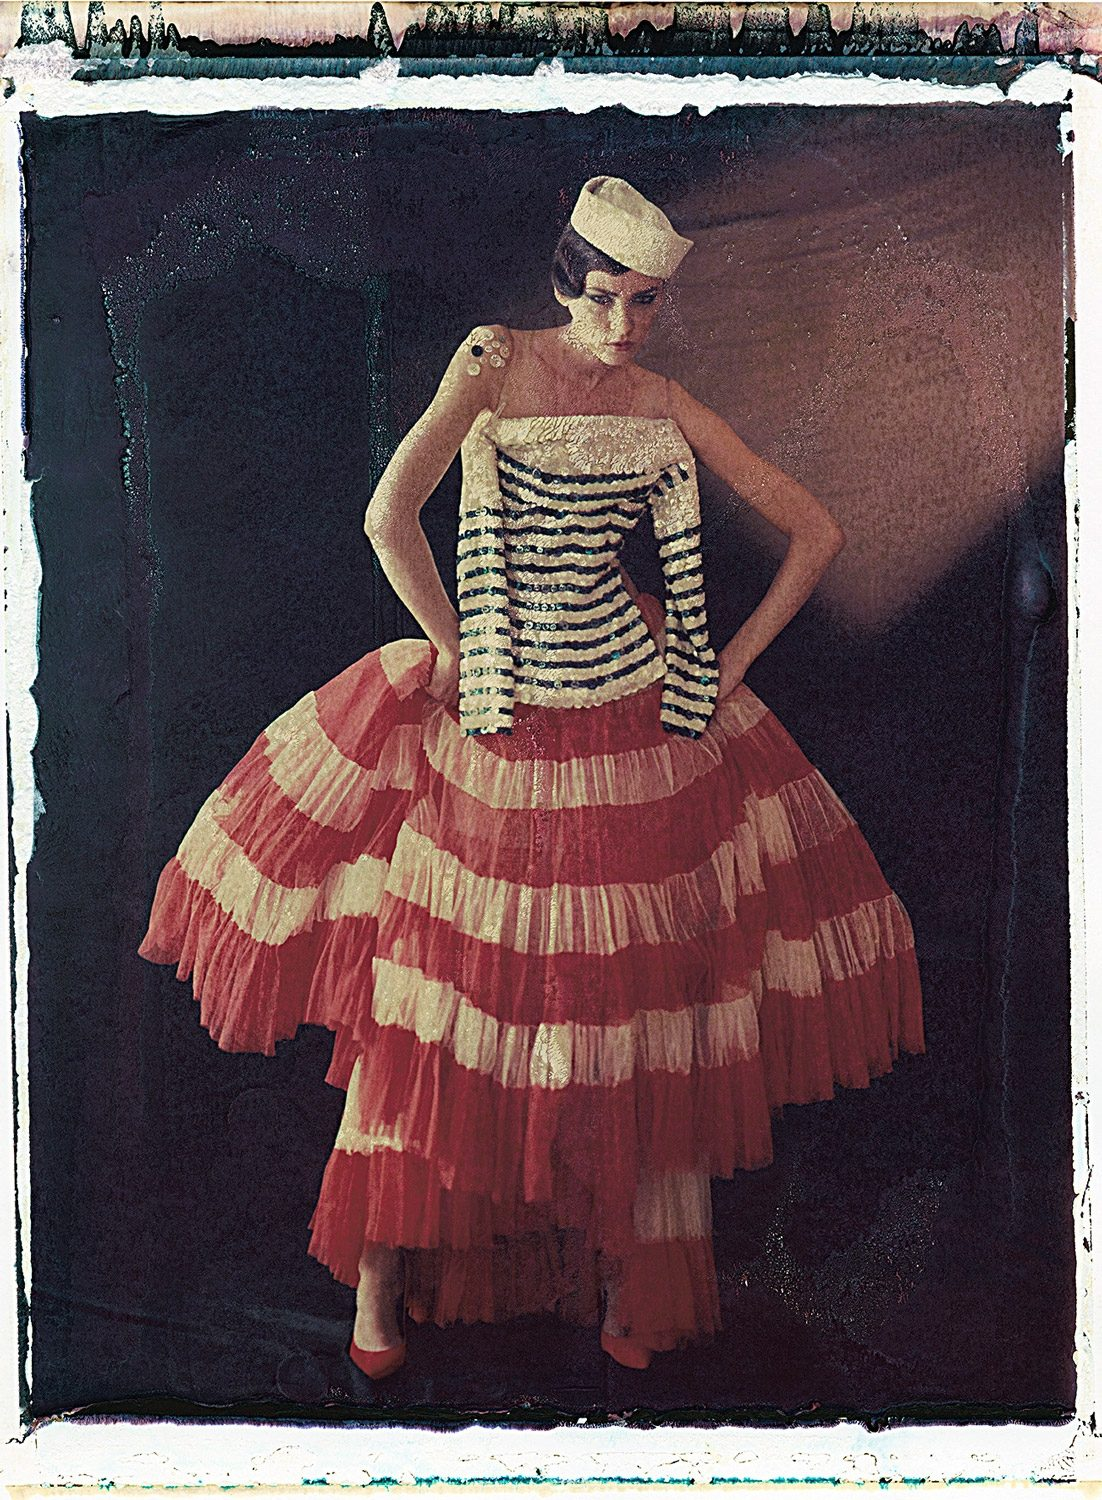 L'enfant terrible, Jean Paul Gaultier, Haute Couture Collection, summer 2003